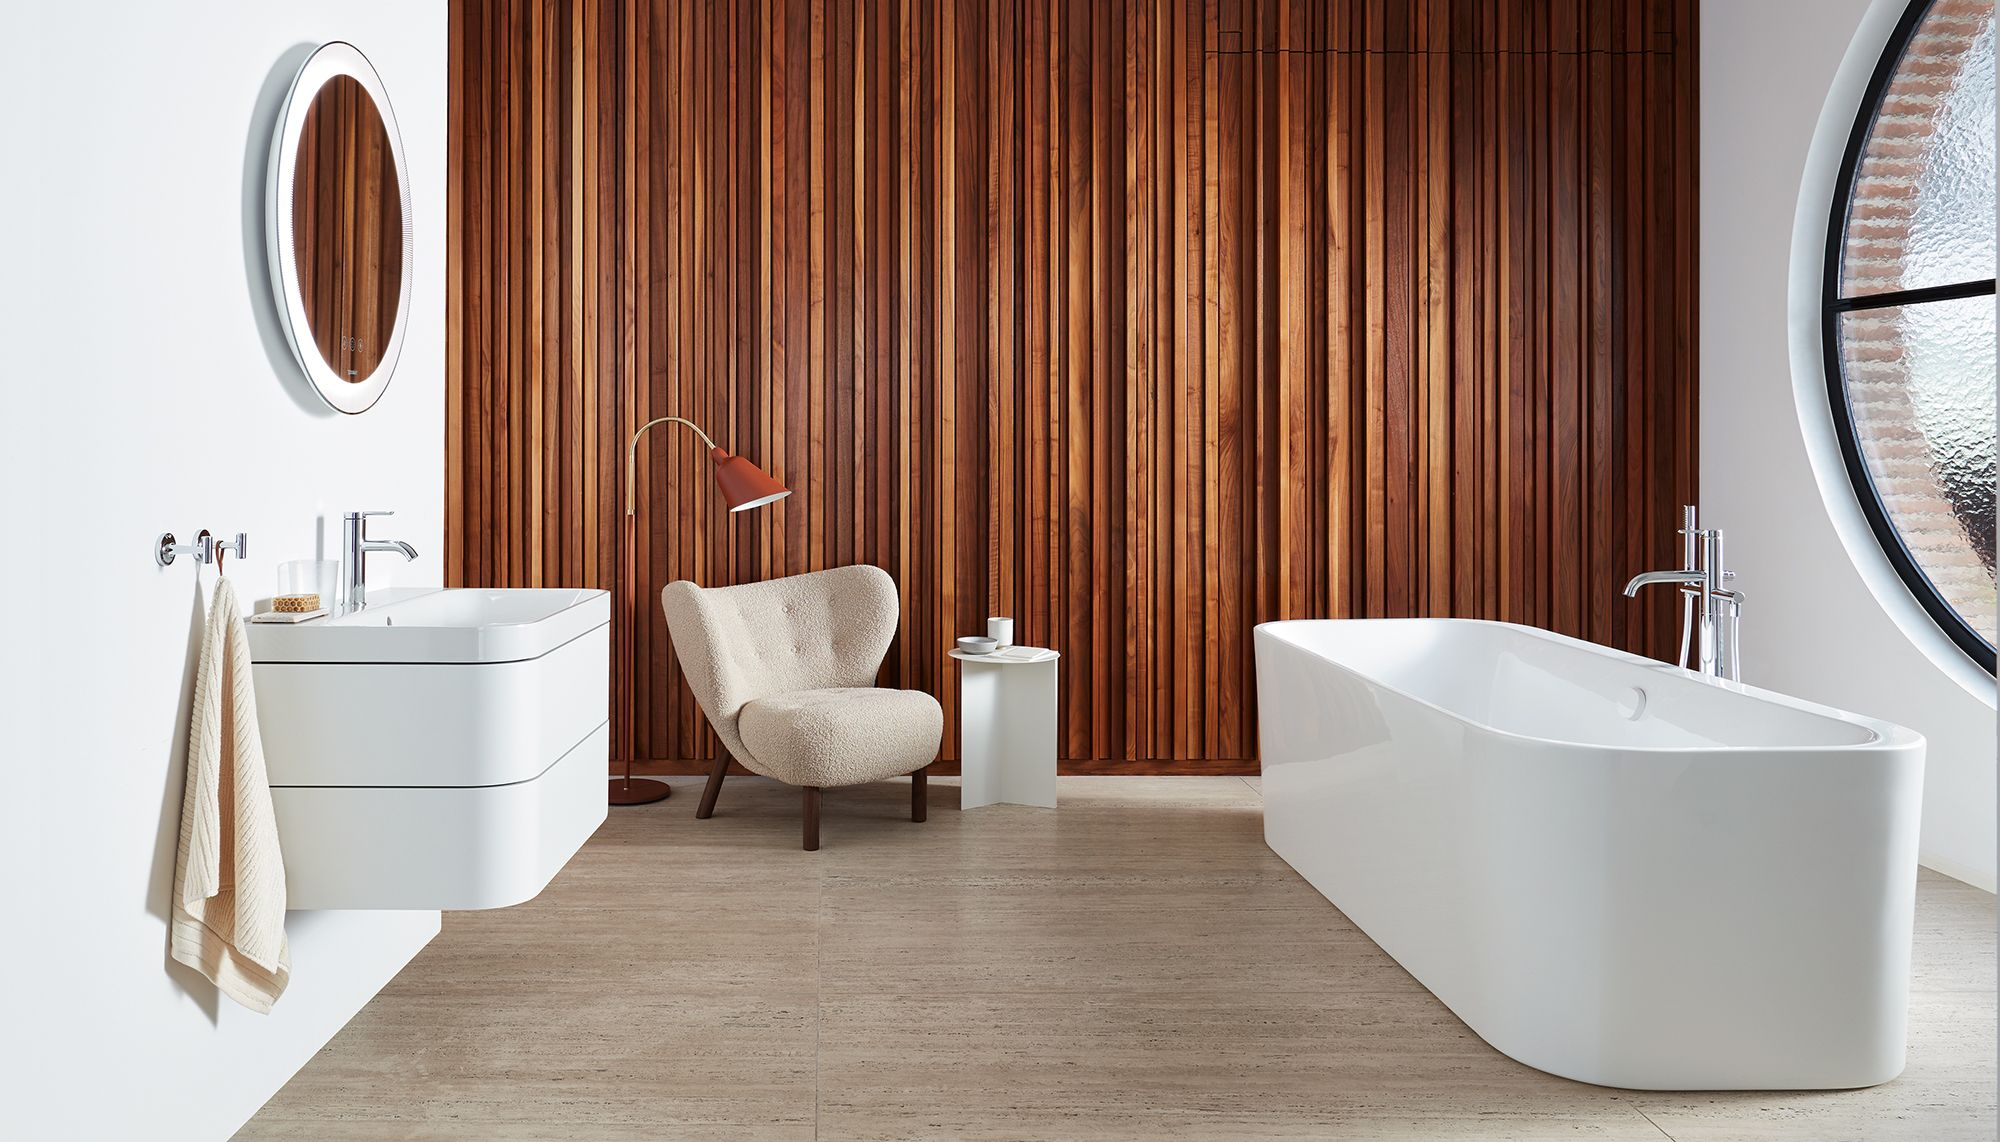 Bathroom Essentials From Duravit: Redefining Standards Of Hygiene And Water Efficiency